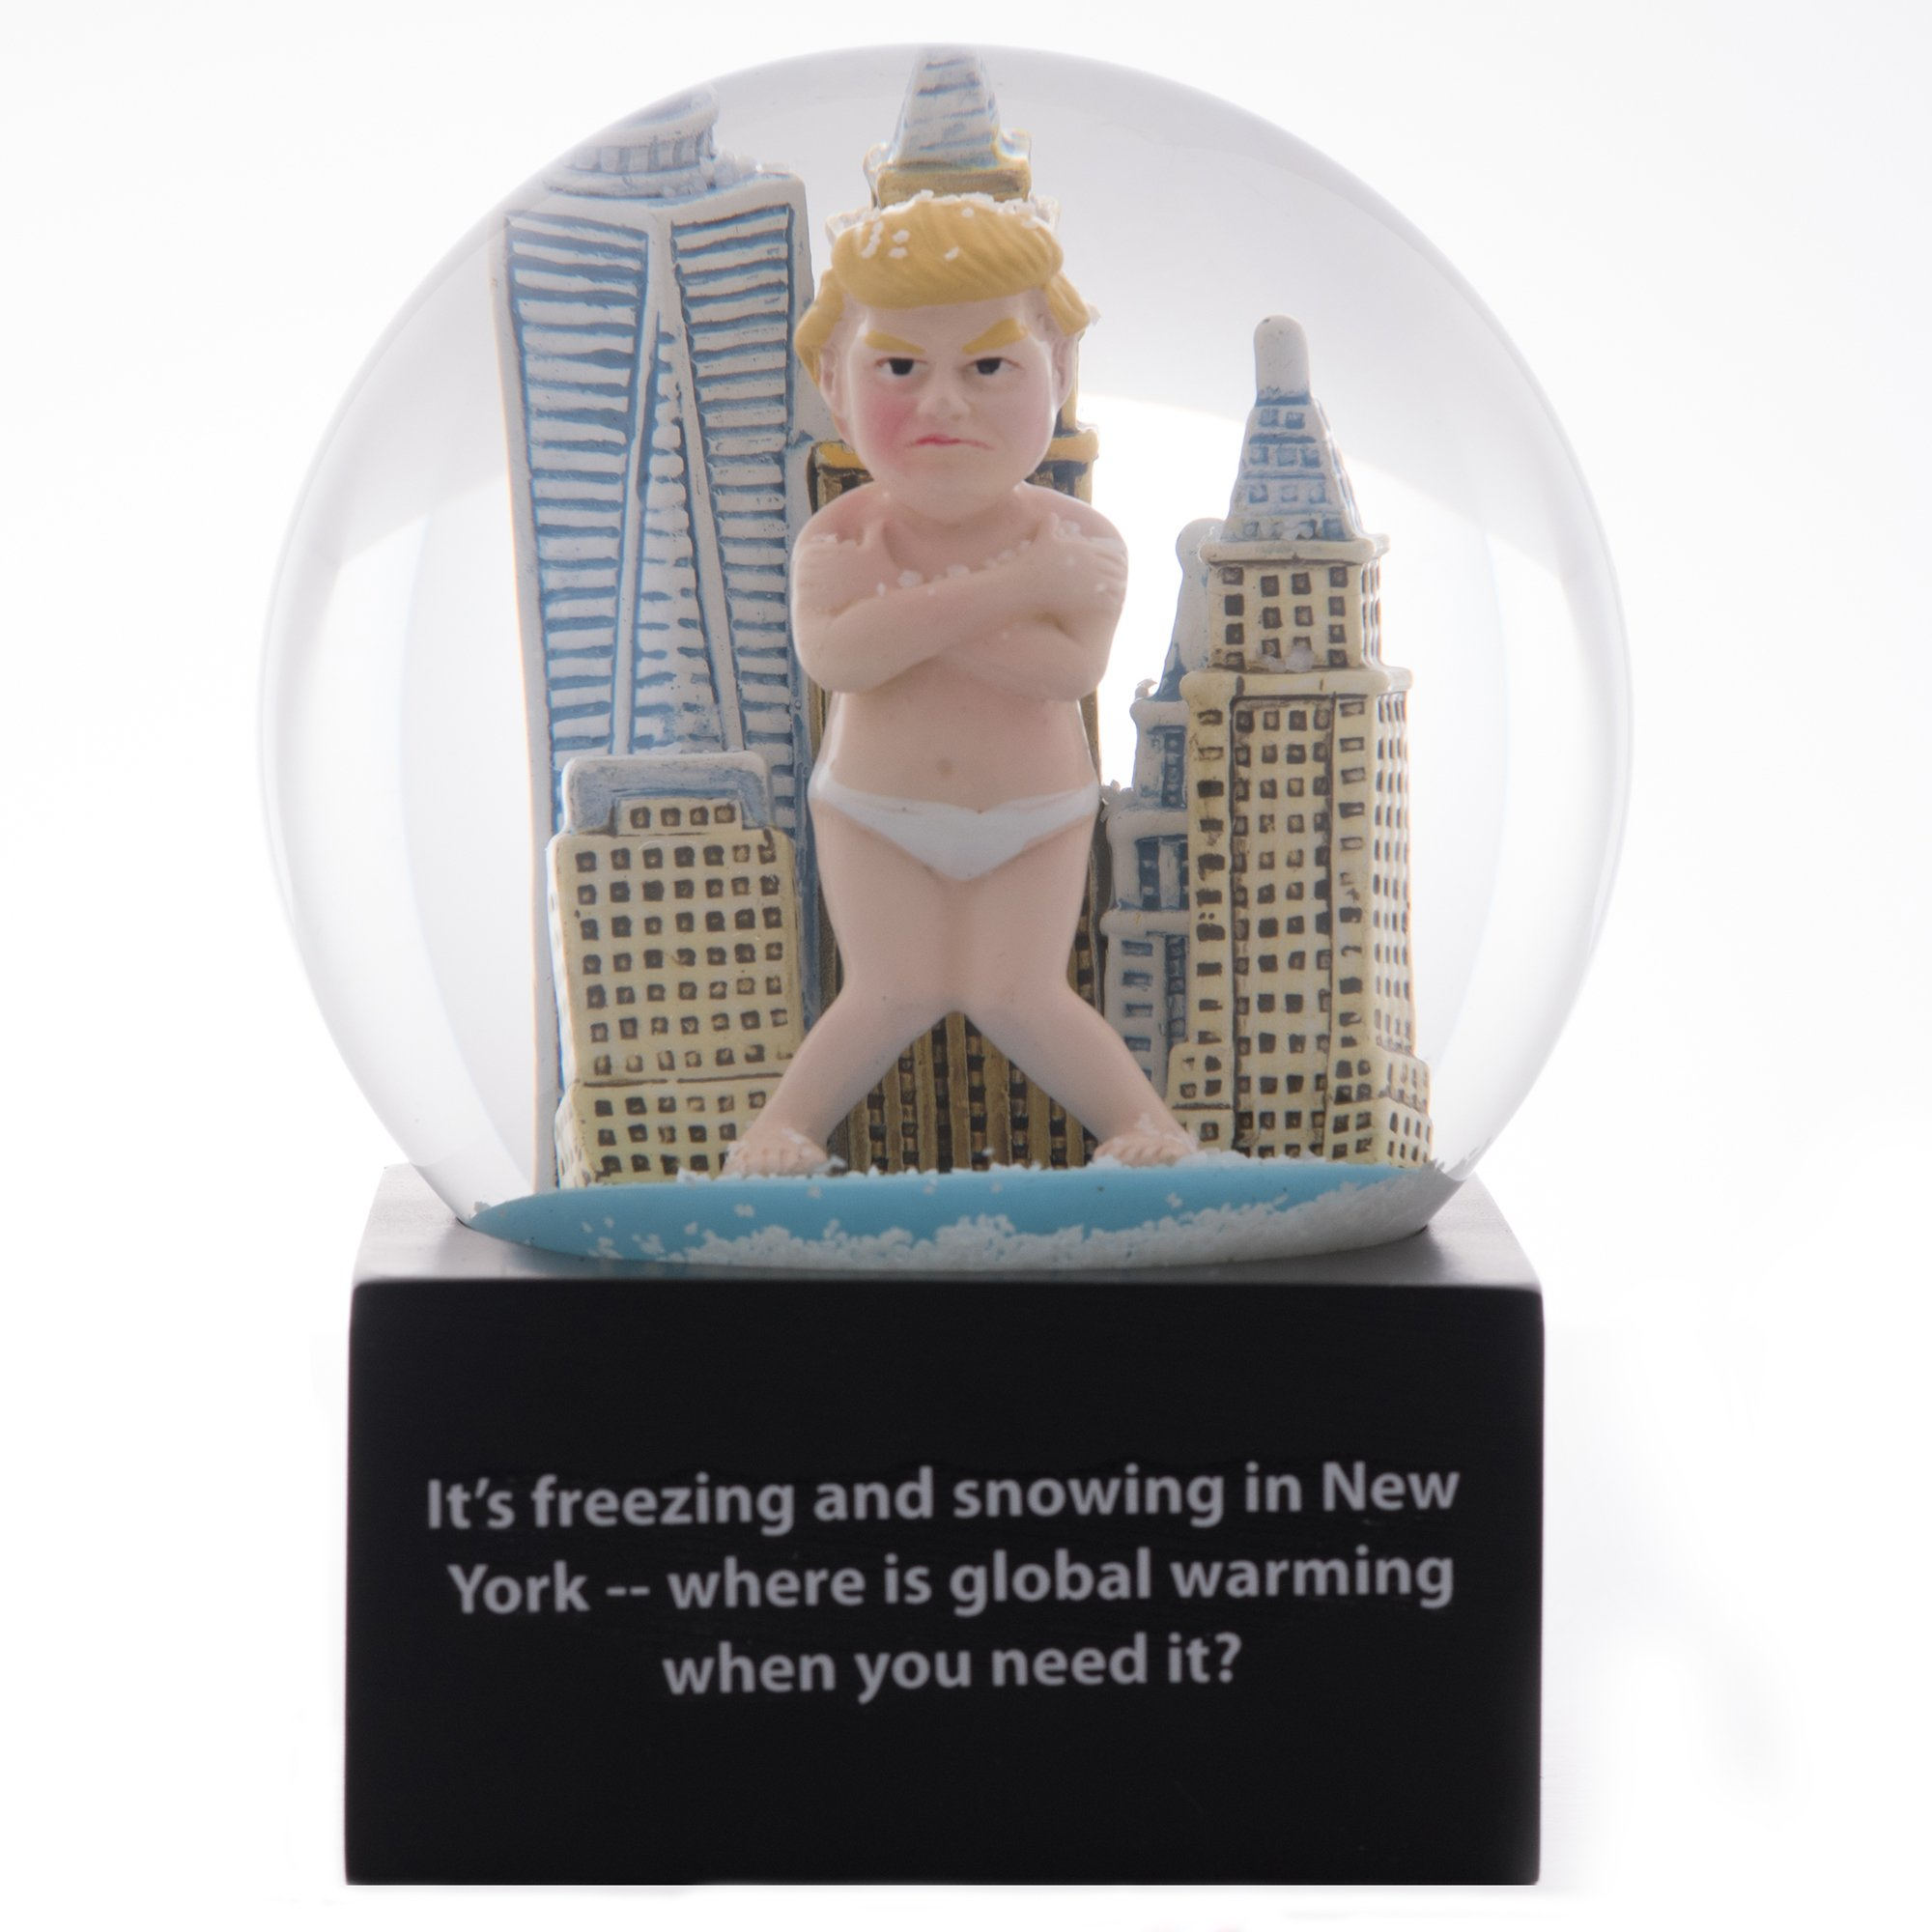 Funny Donald Trump Snowglobe with Original Global Warming Tweet | Perfect Gag Gift for Birthdays! | Hand Painted | New York Background | Guaranteed Laugh